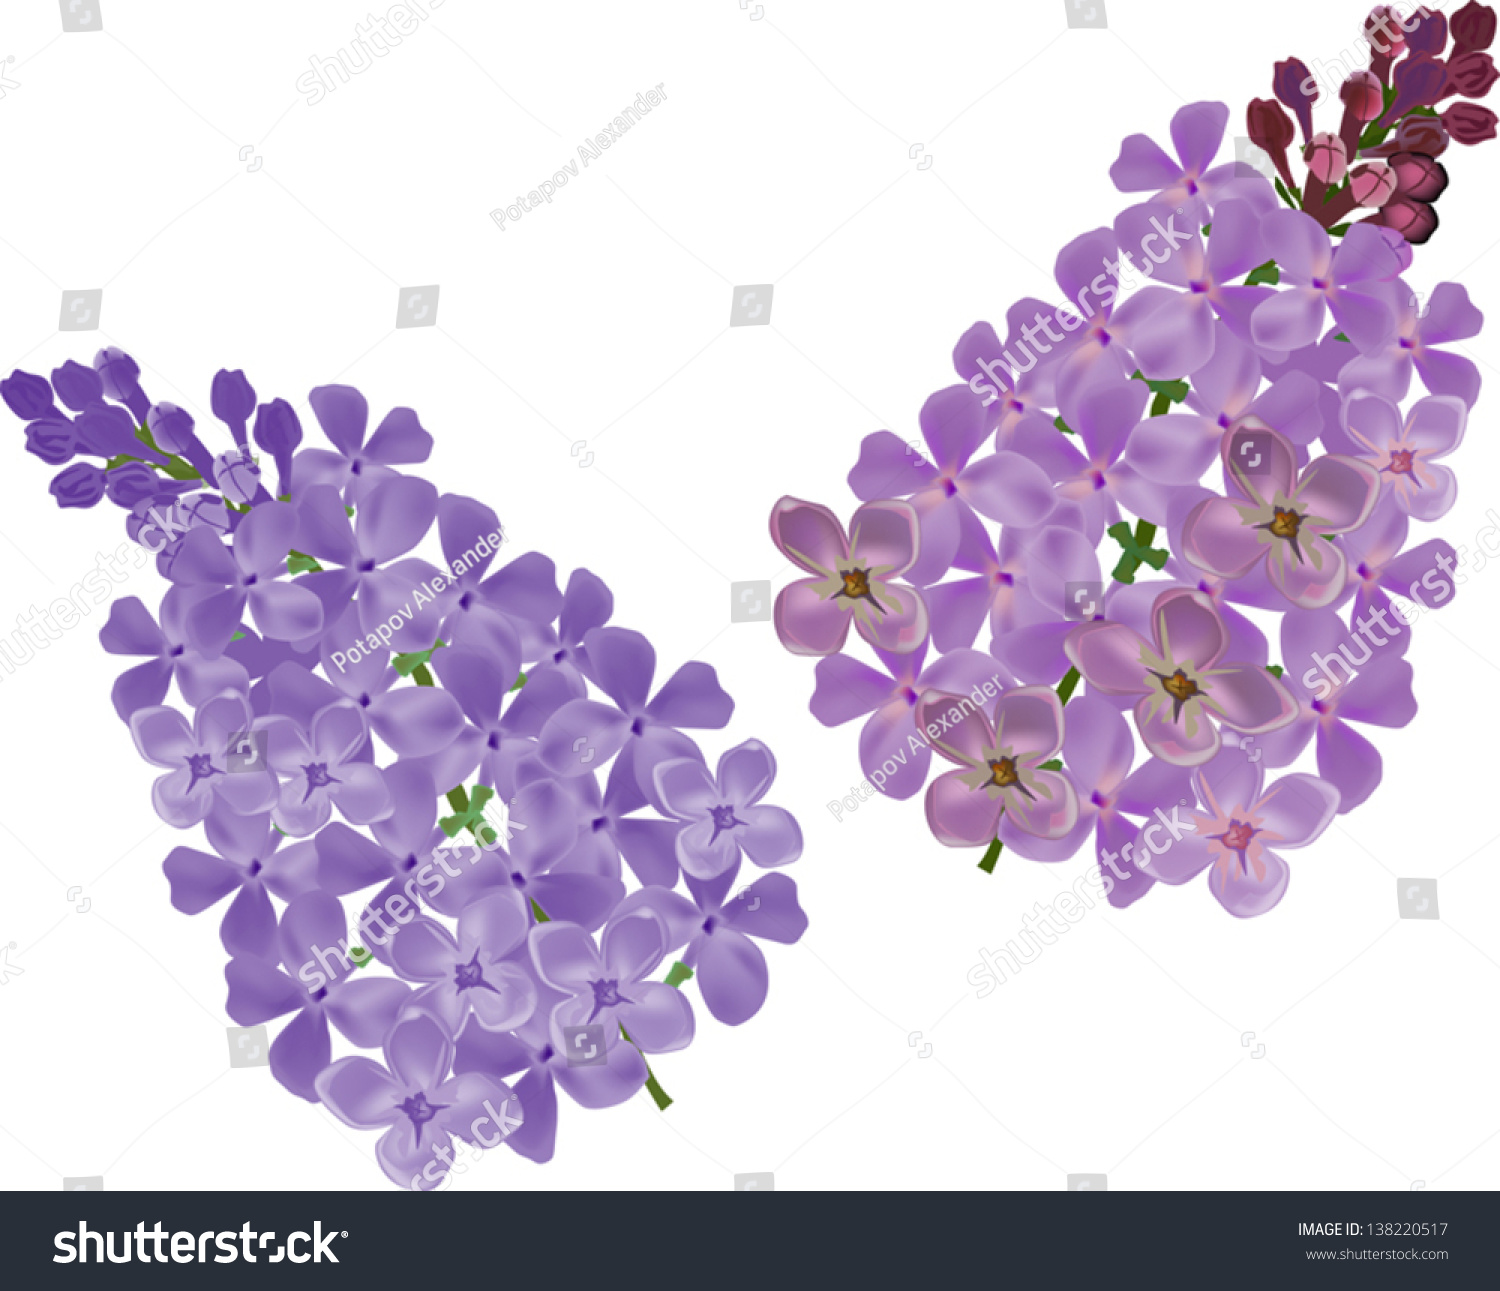 Illustration With Lilac Flower Branches On White